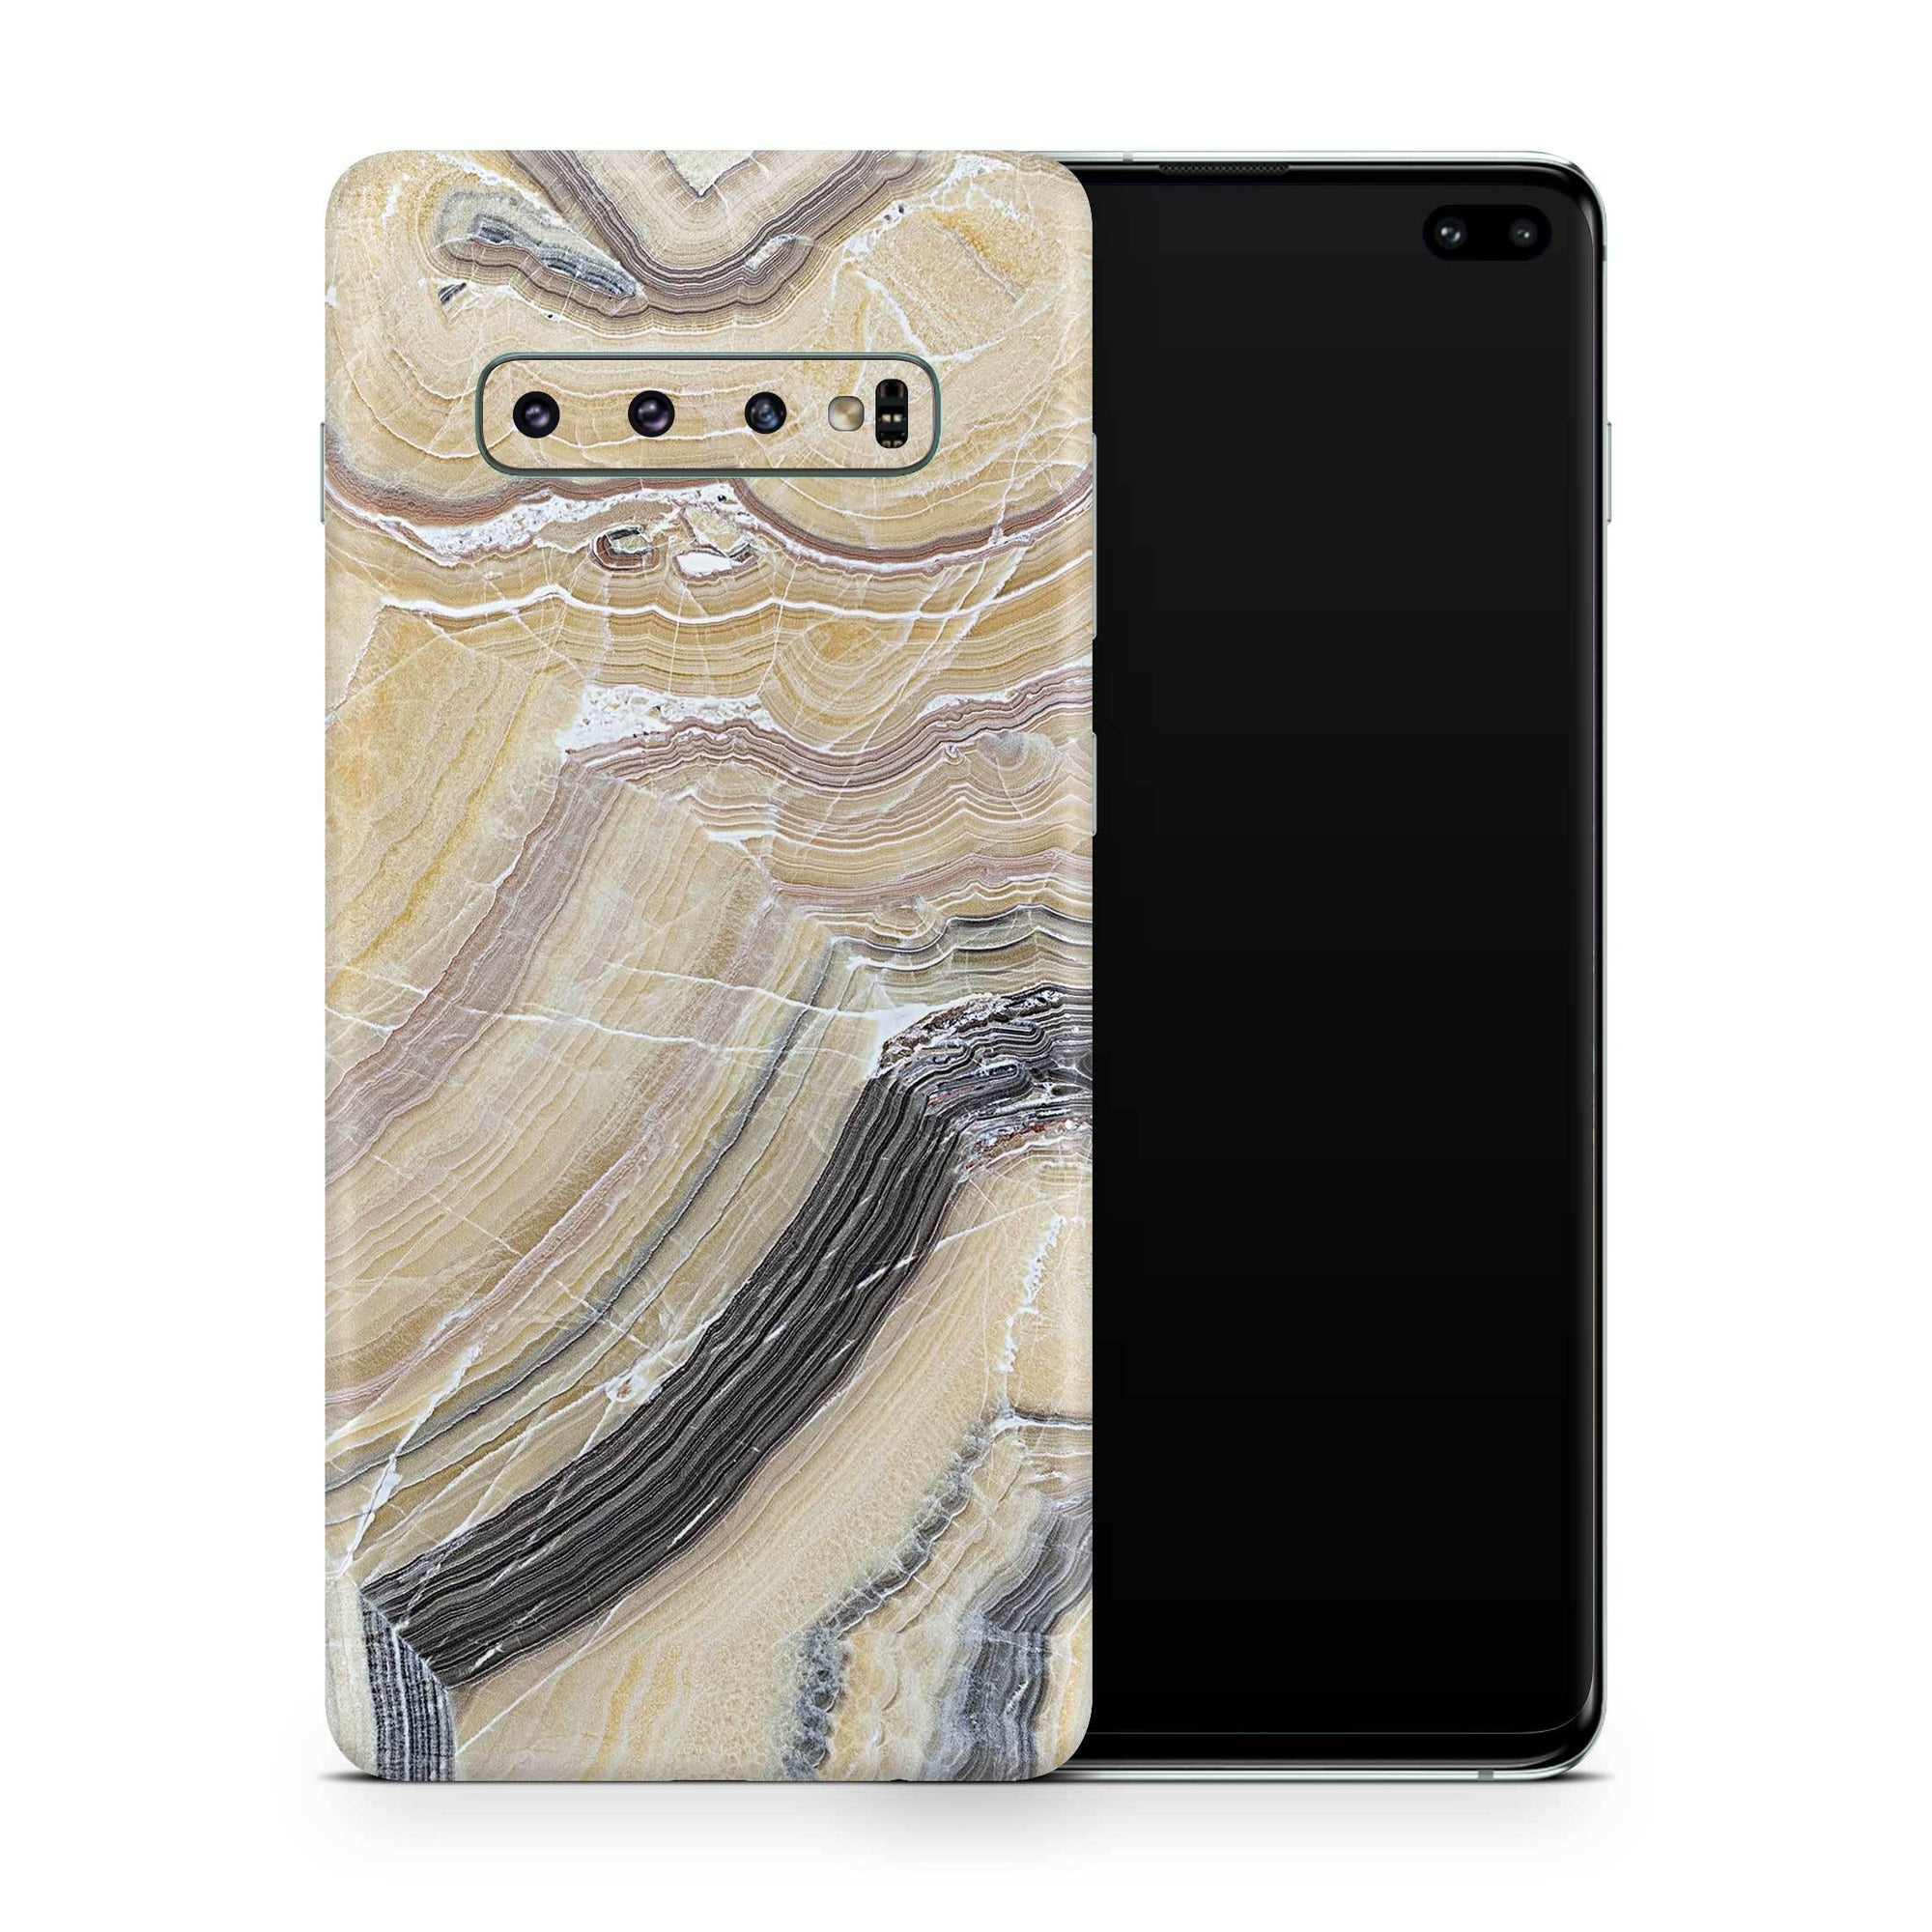 Butter Marble Galaxy S10 and S10 Plus and S10e Skin